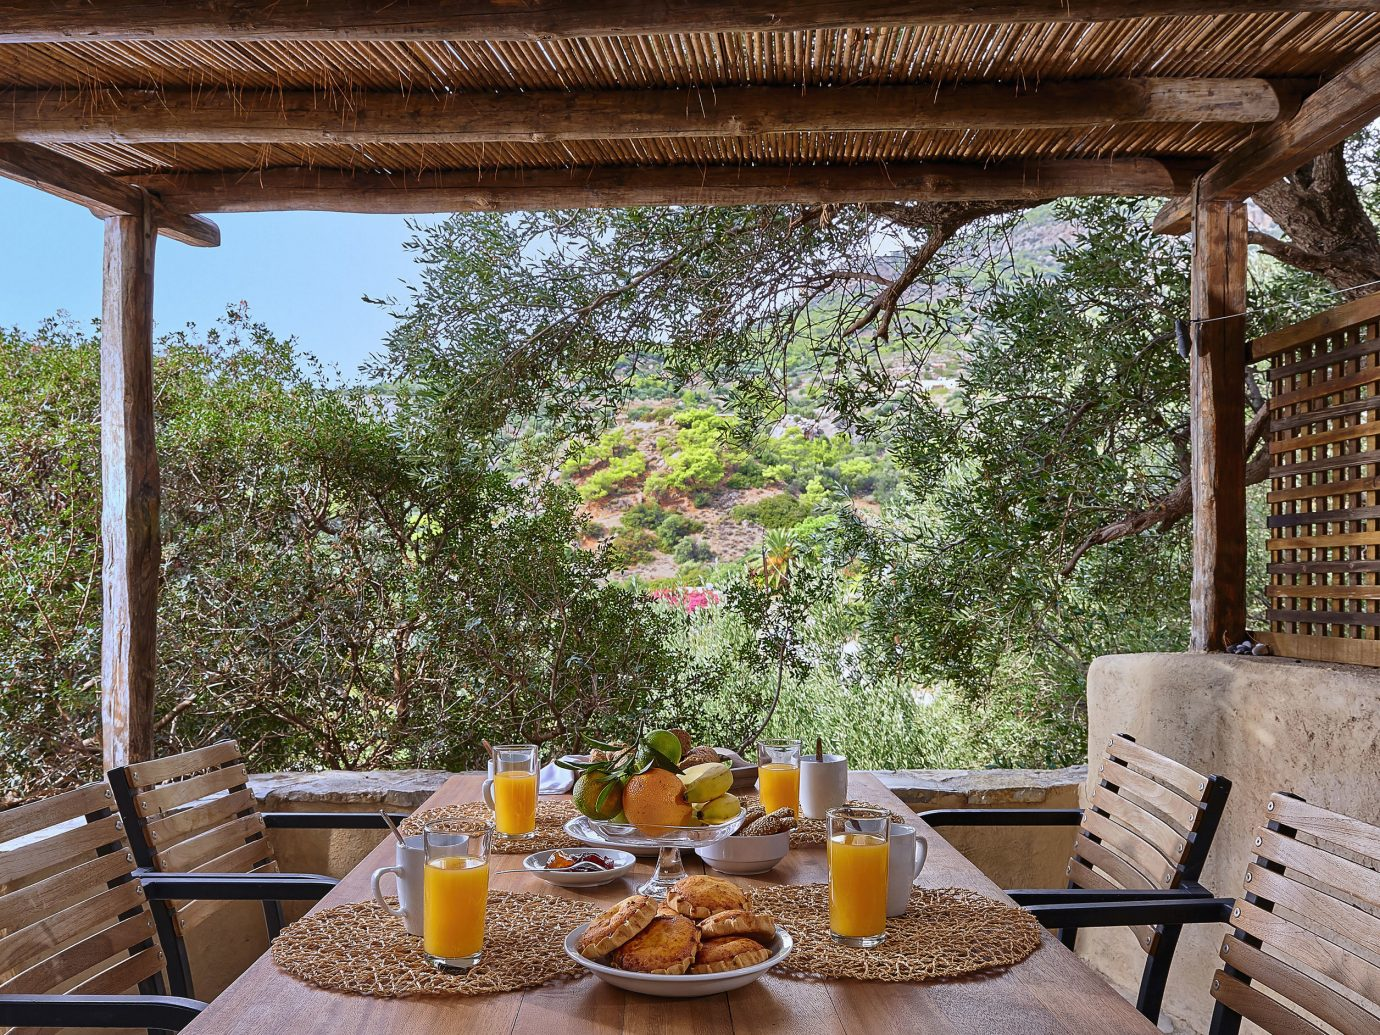 Trip Ideas tree outdoor table chair property wooden Picnic room estate porch backyard home cottage Resort Villa real estate outdoor structure Garden interior design yard farmhouse hacienda Courtyard area set meal surrounded dining table